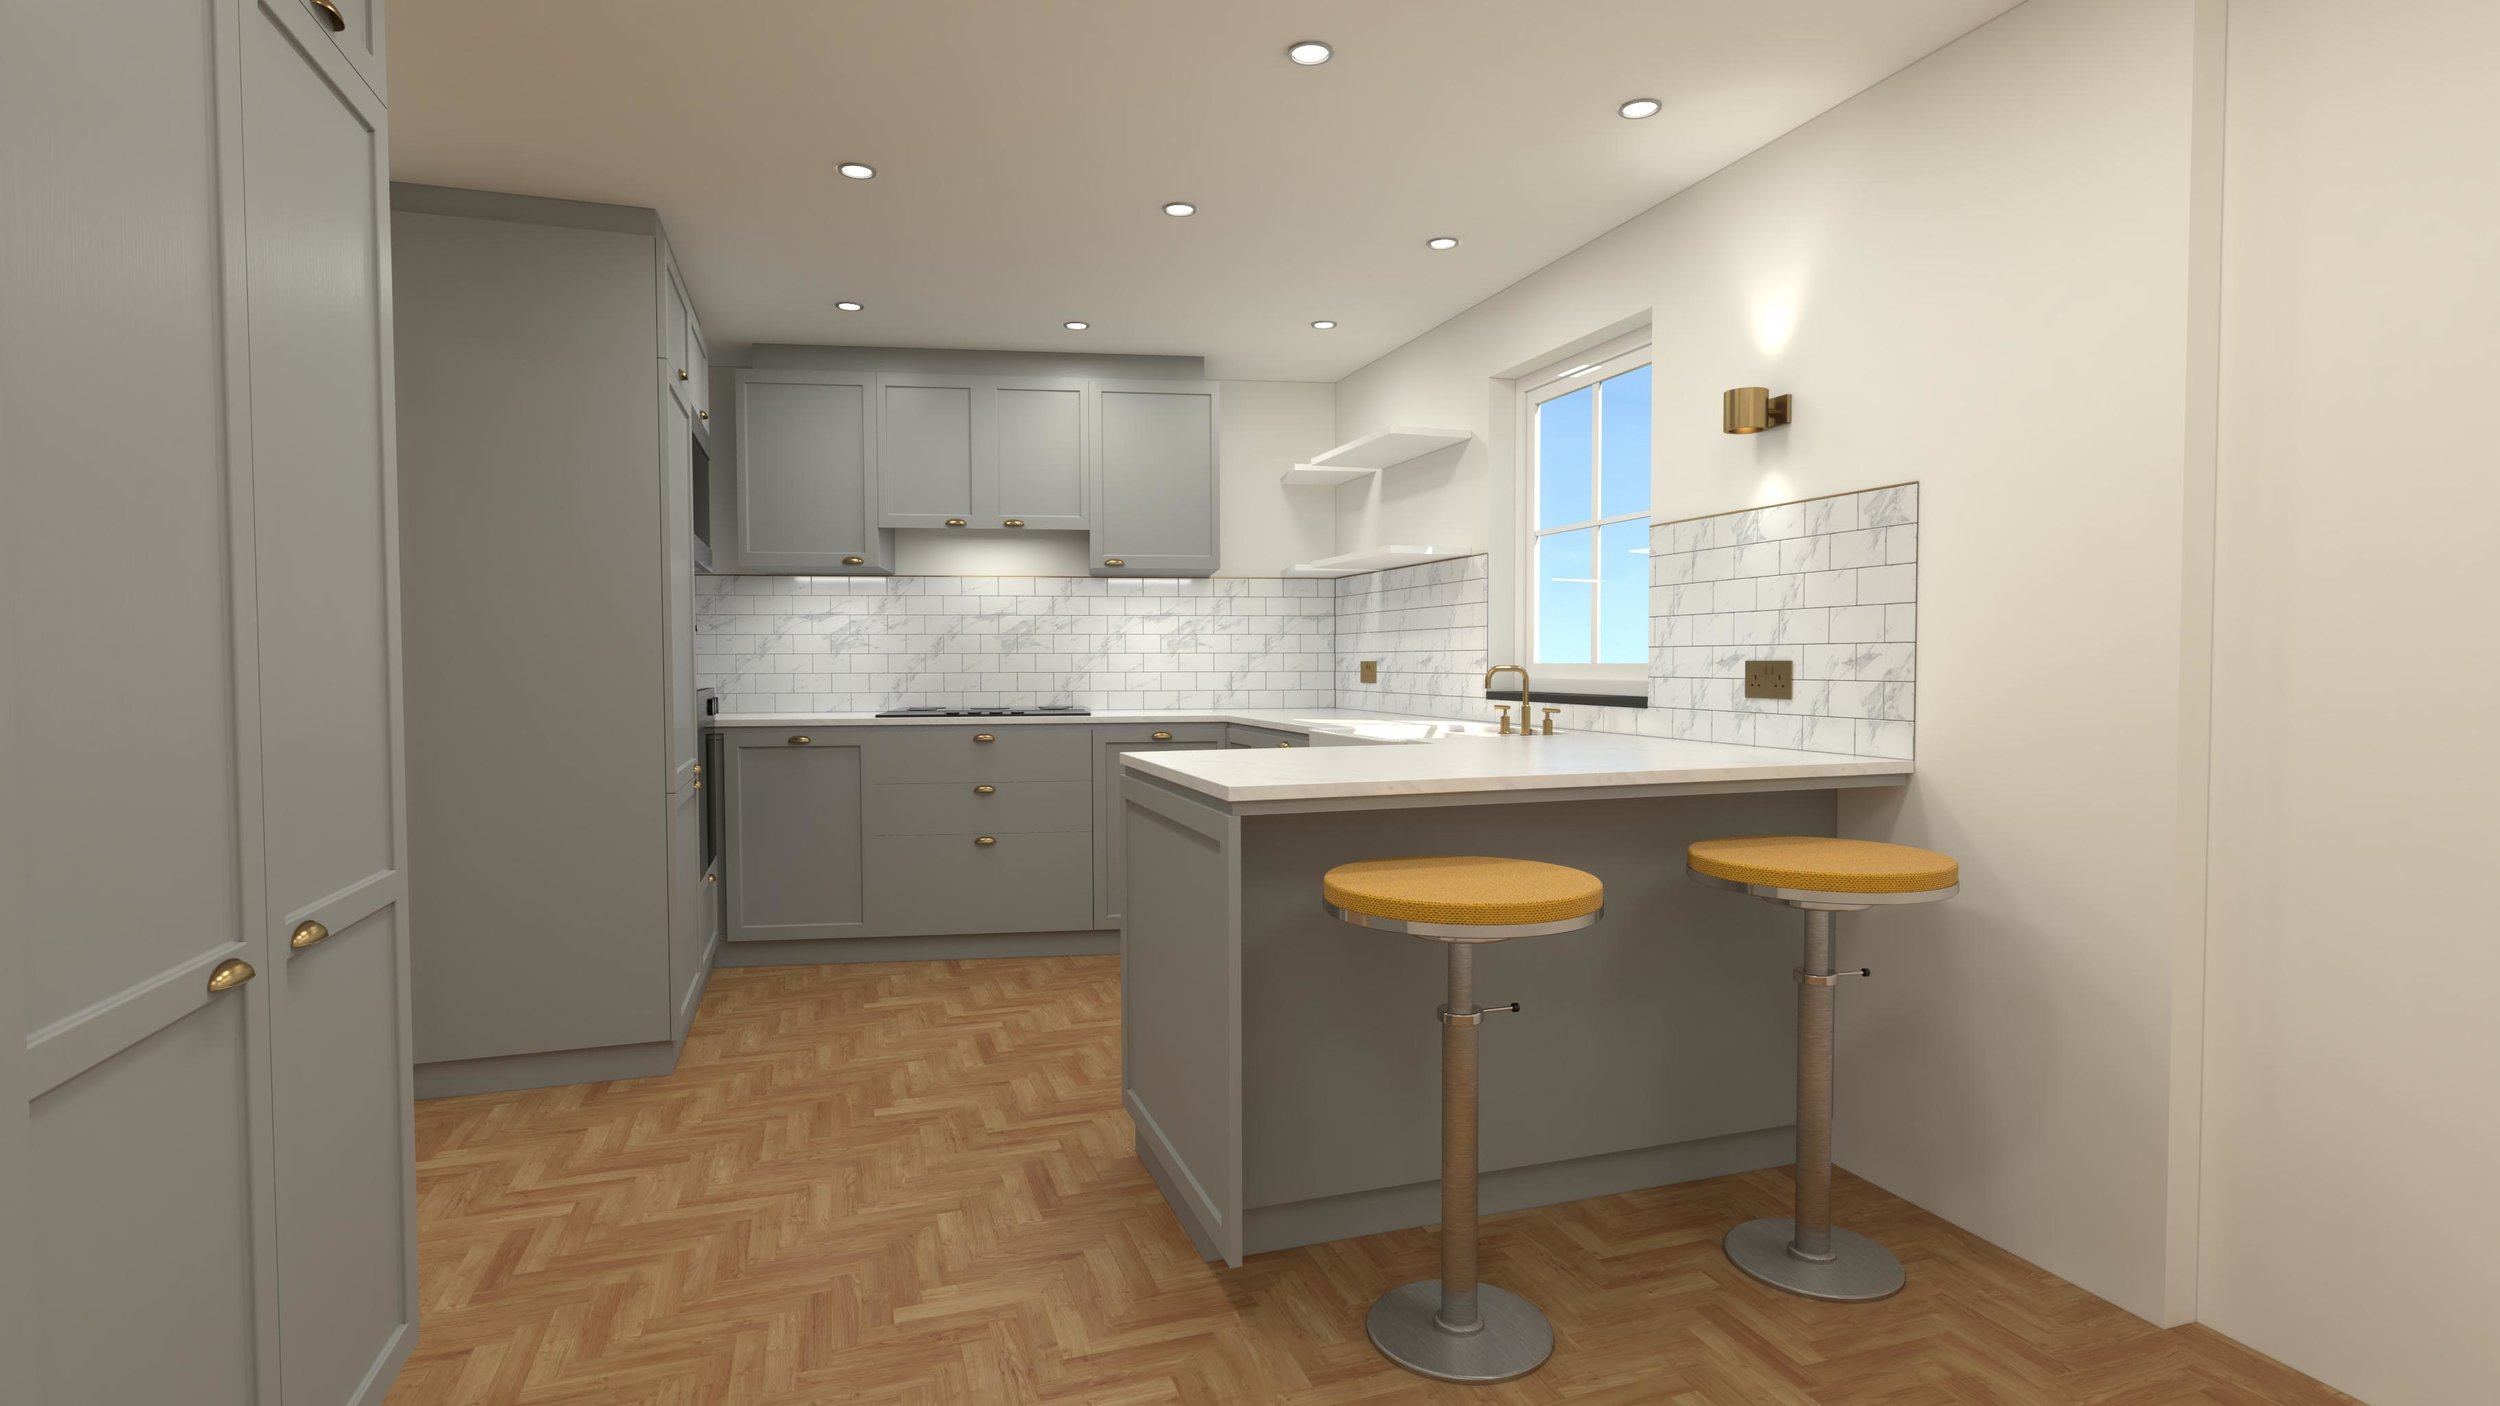 Kitchen Interior4.jpg